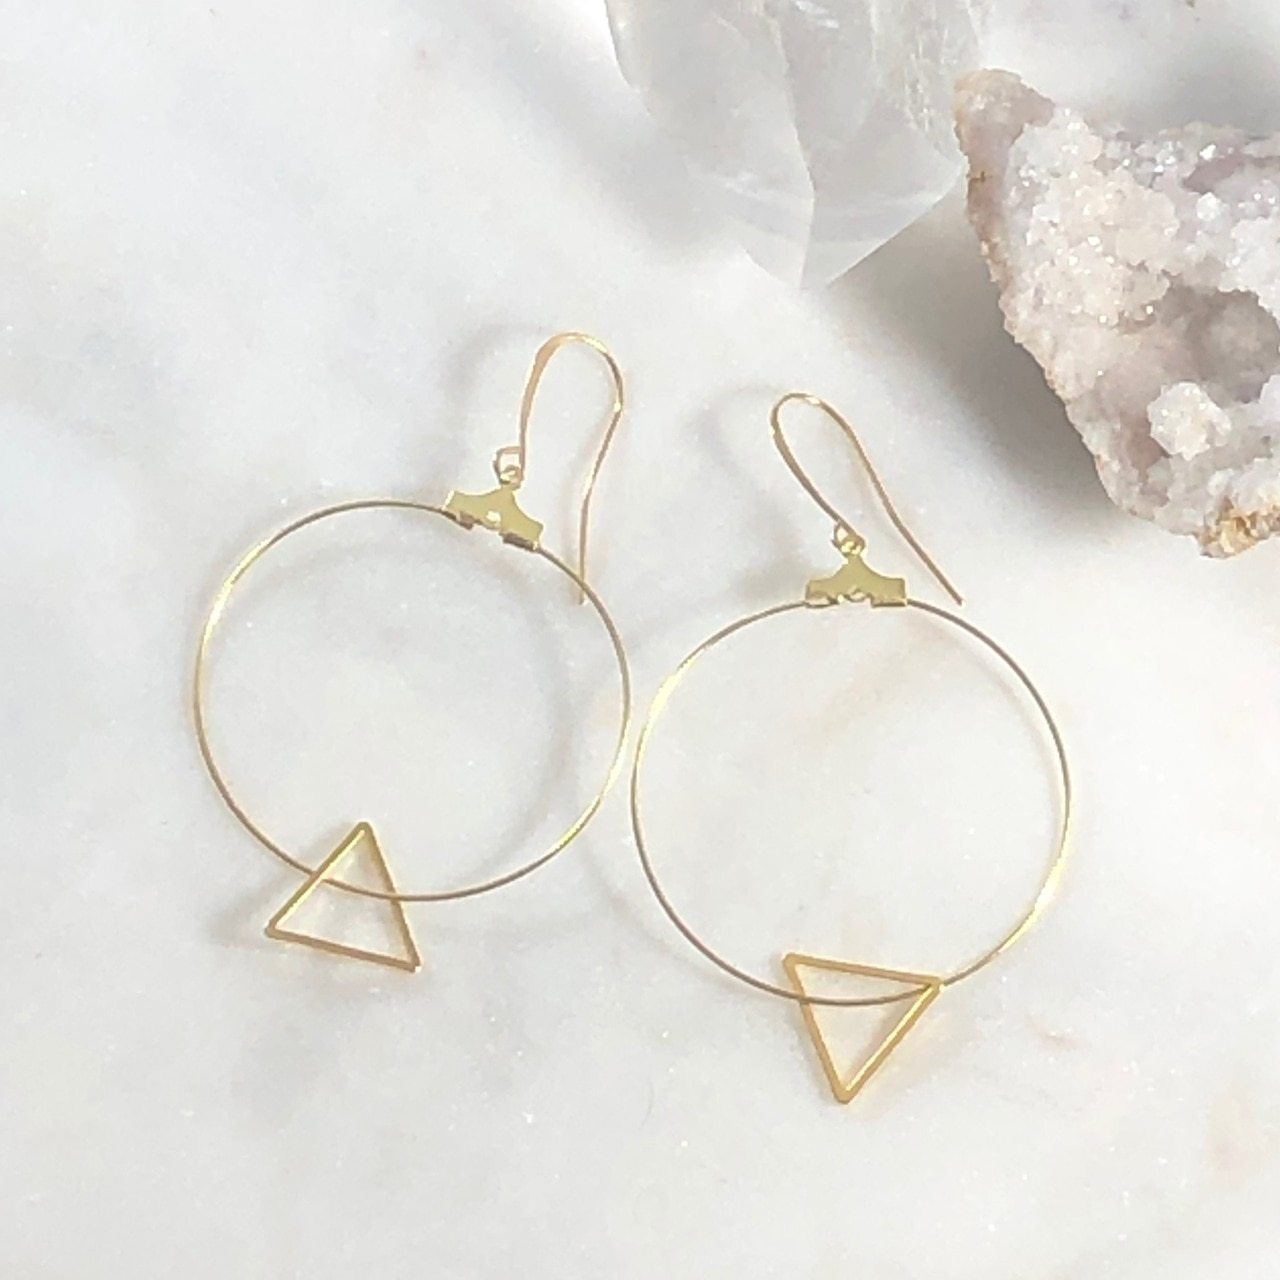 Sacred Geometry Earrings for a Modern, Boho Style